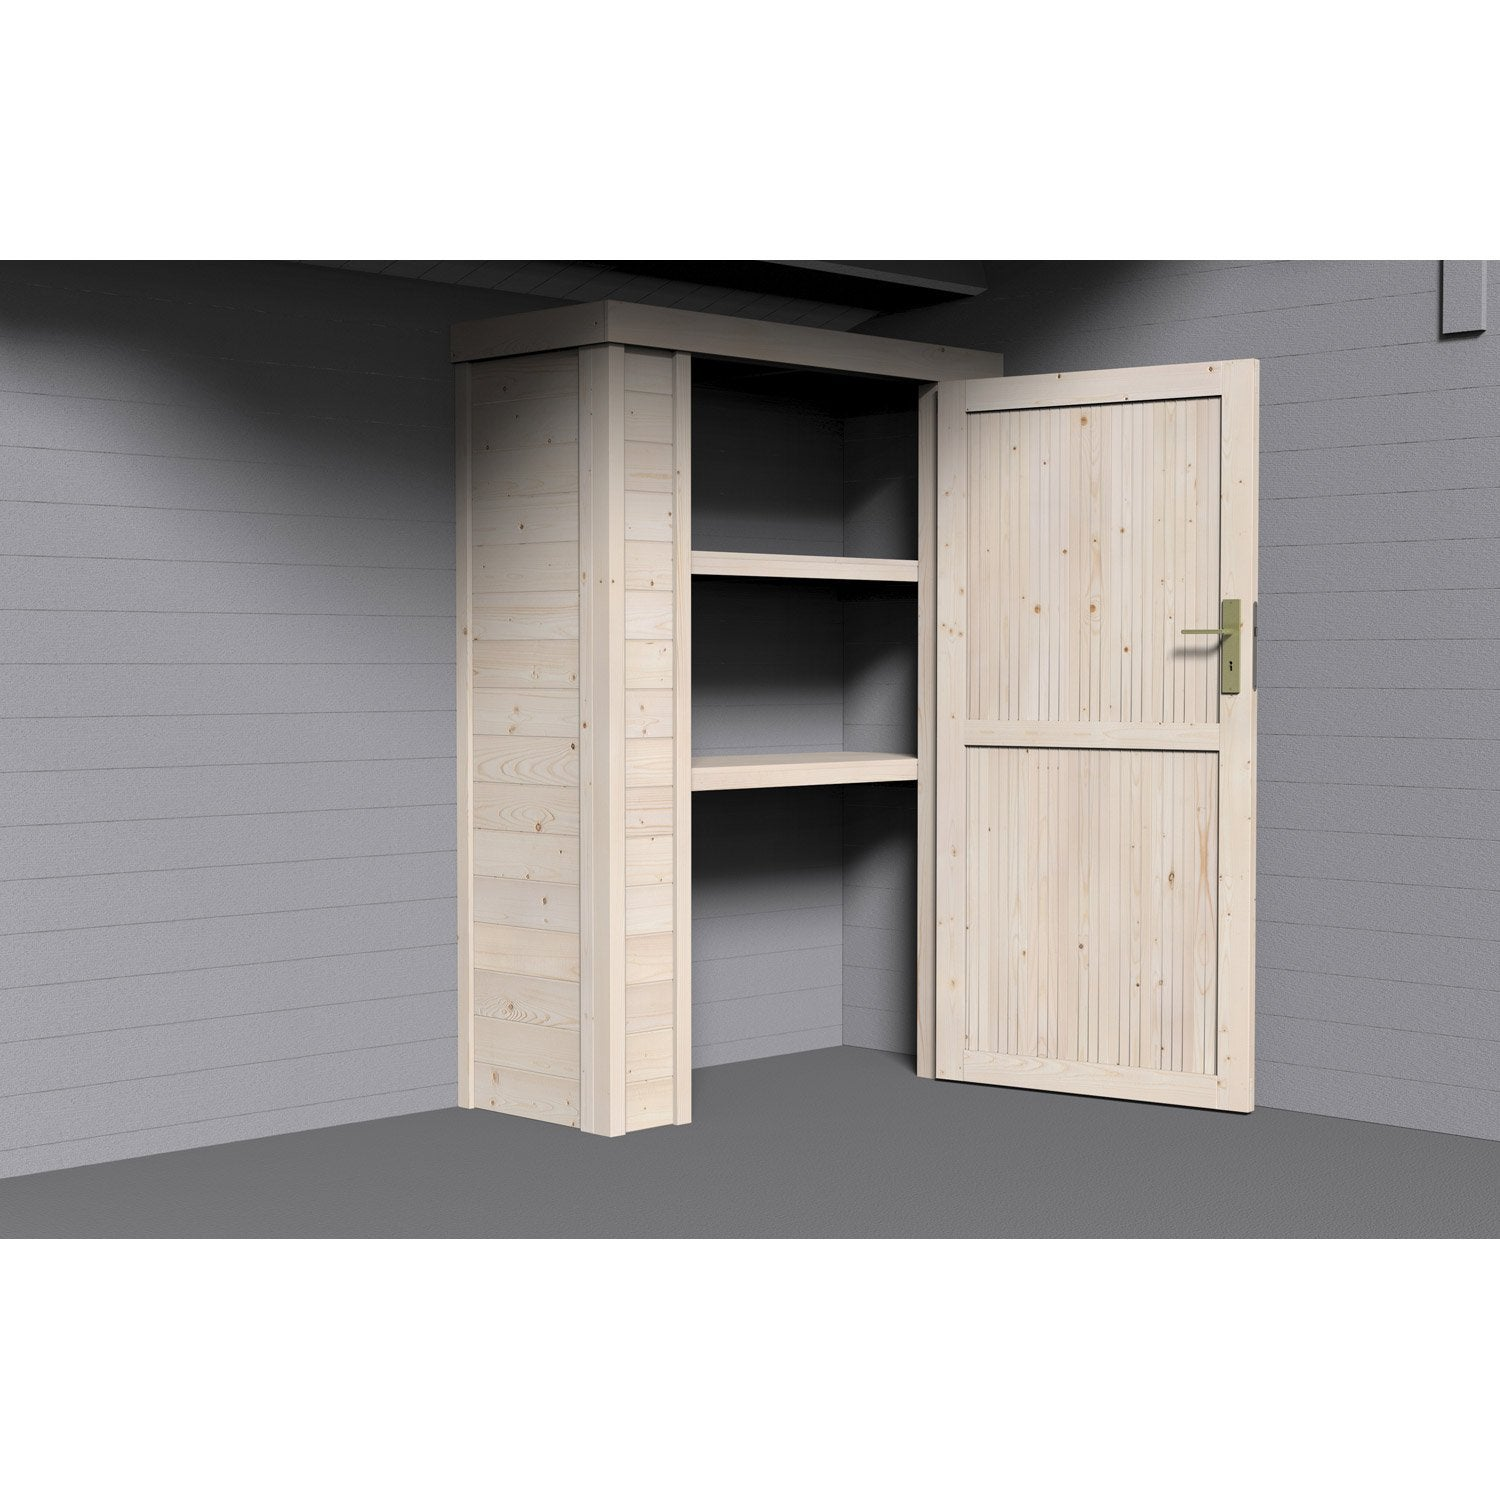 armoire en bois decor et jardin x x cm. Black Bedroom Furniture Sets. Home Design Ideas